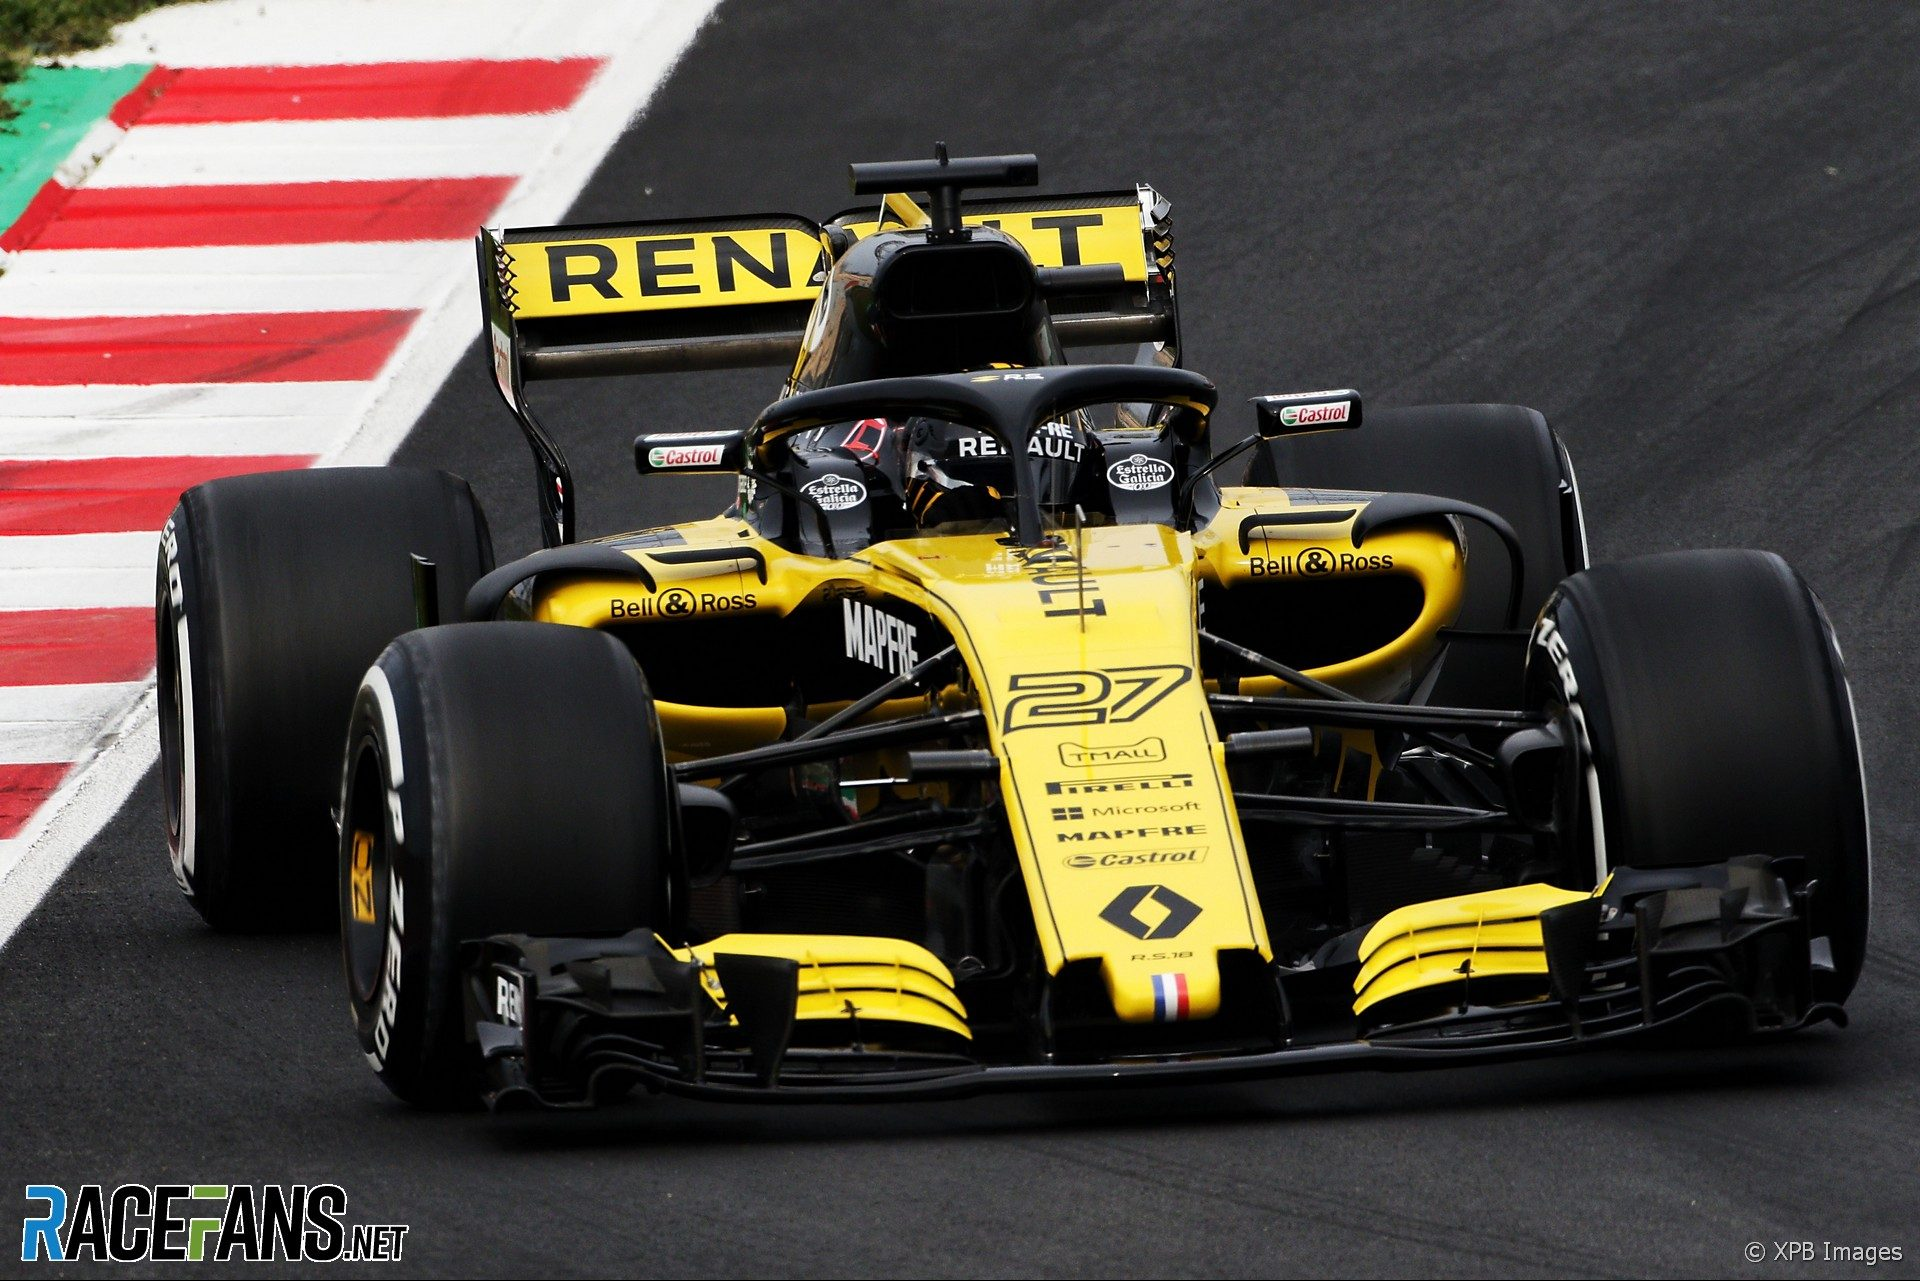 renault 39 can score points with both cars at every race 39 racefans. Black Bedroom Furniture Sets. Home Design Ideas